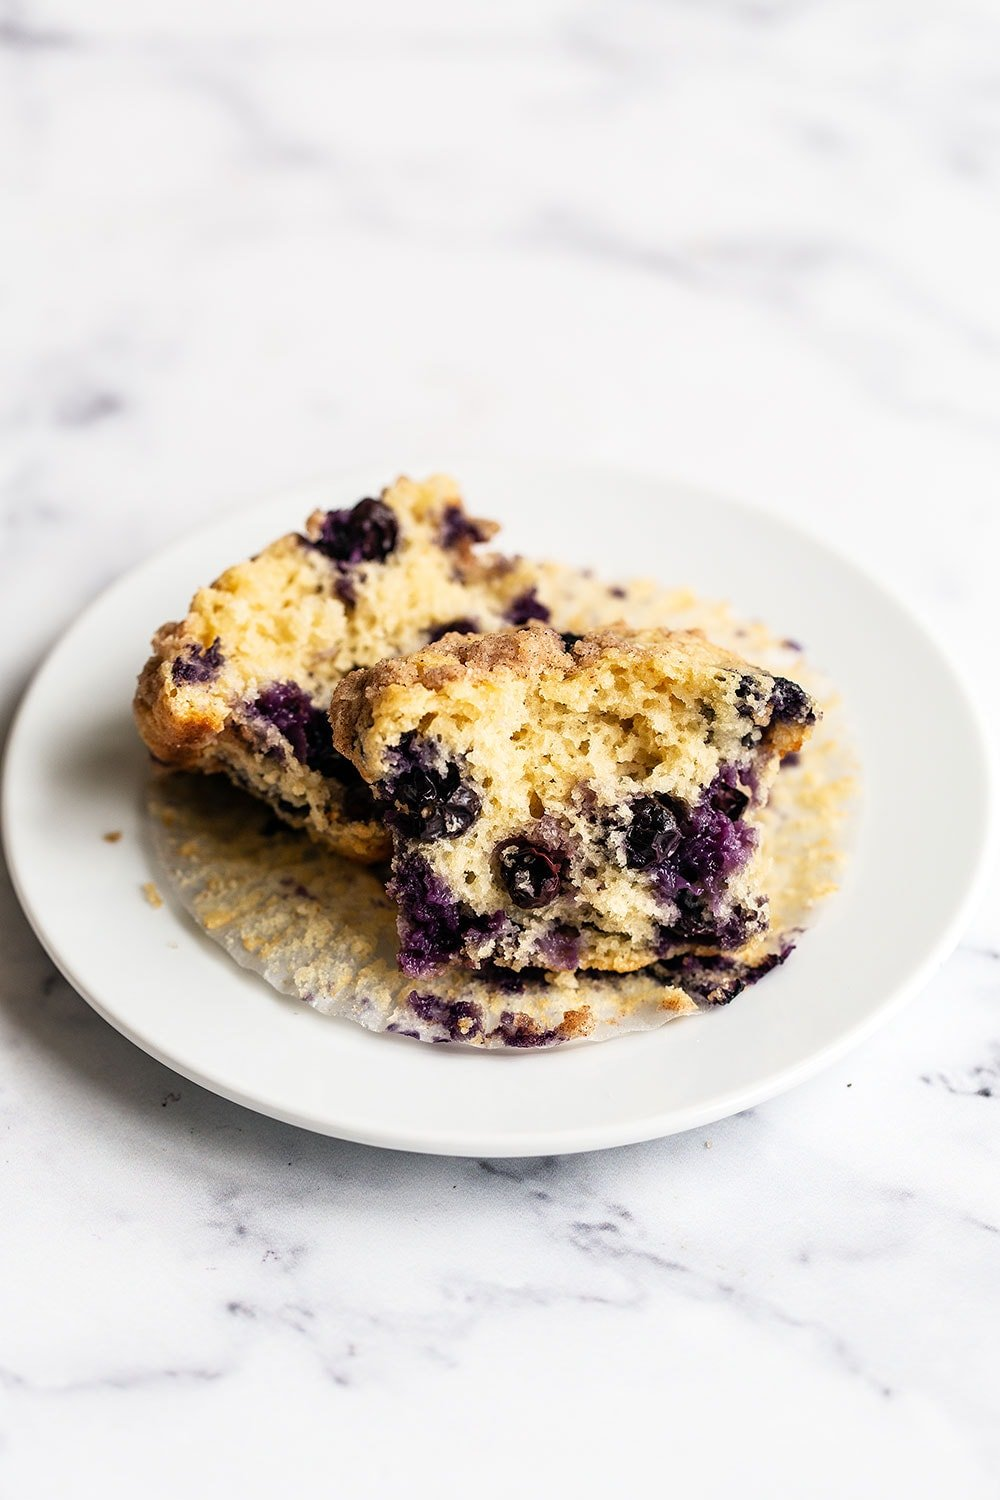 Tender and fluffy brown butter blueberry muffin cut in half